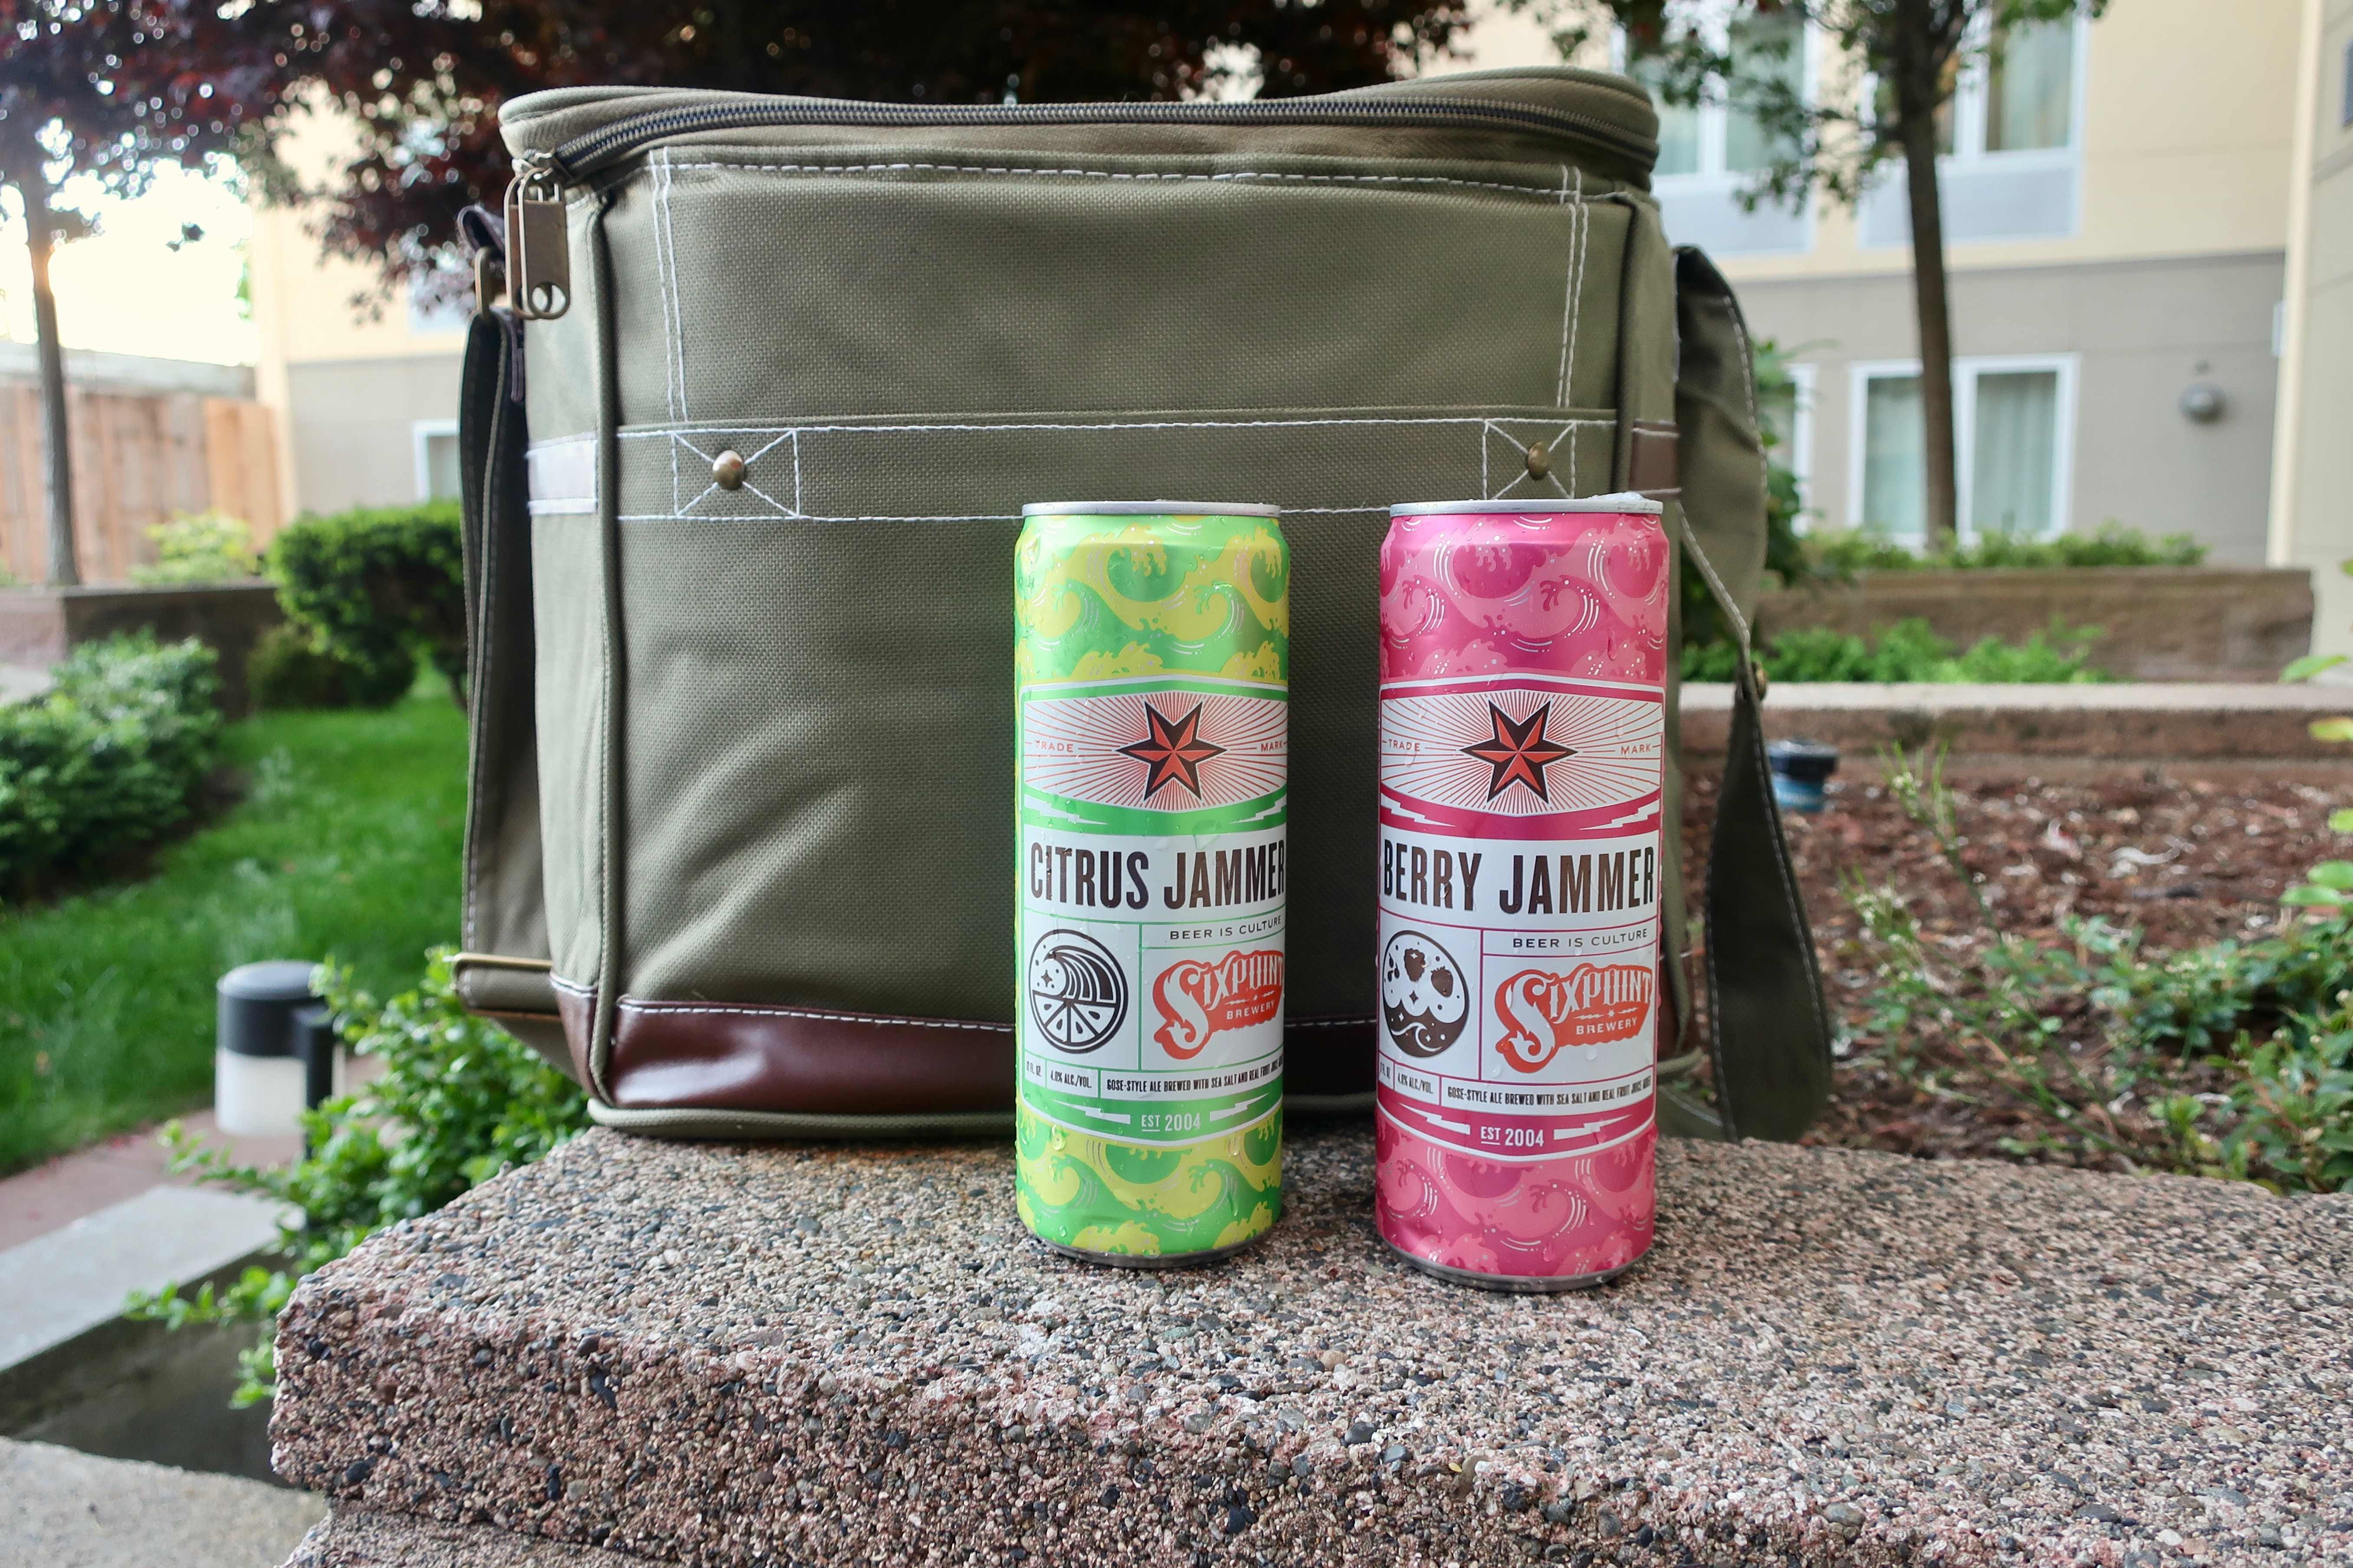 Groovy Guy Gifts Combat Cooler holds up to 18 cans.